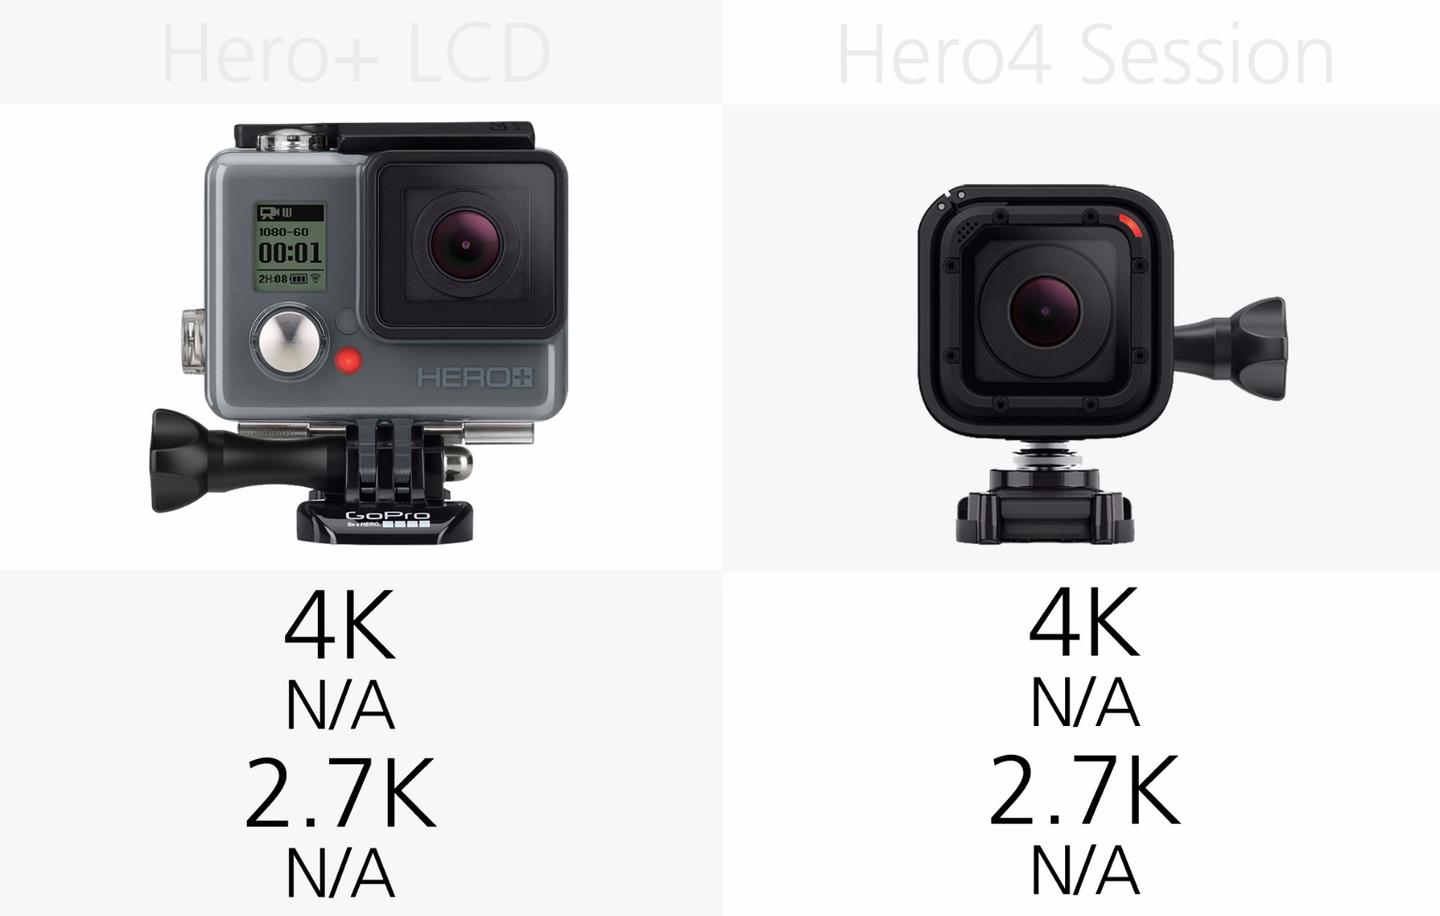 GoPro Hero+LCD and GoPro Hero4 Session 4K video options